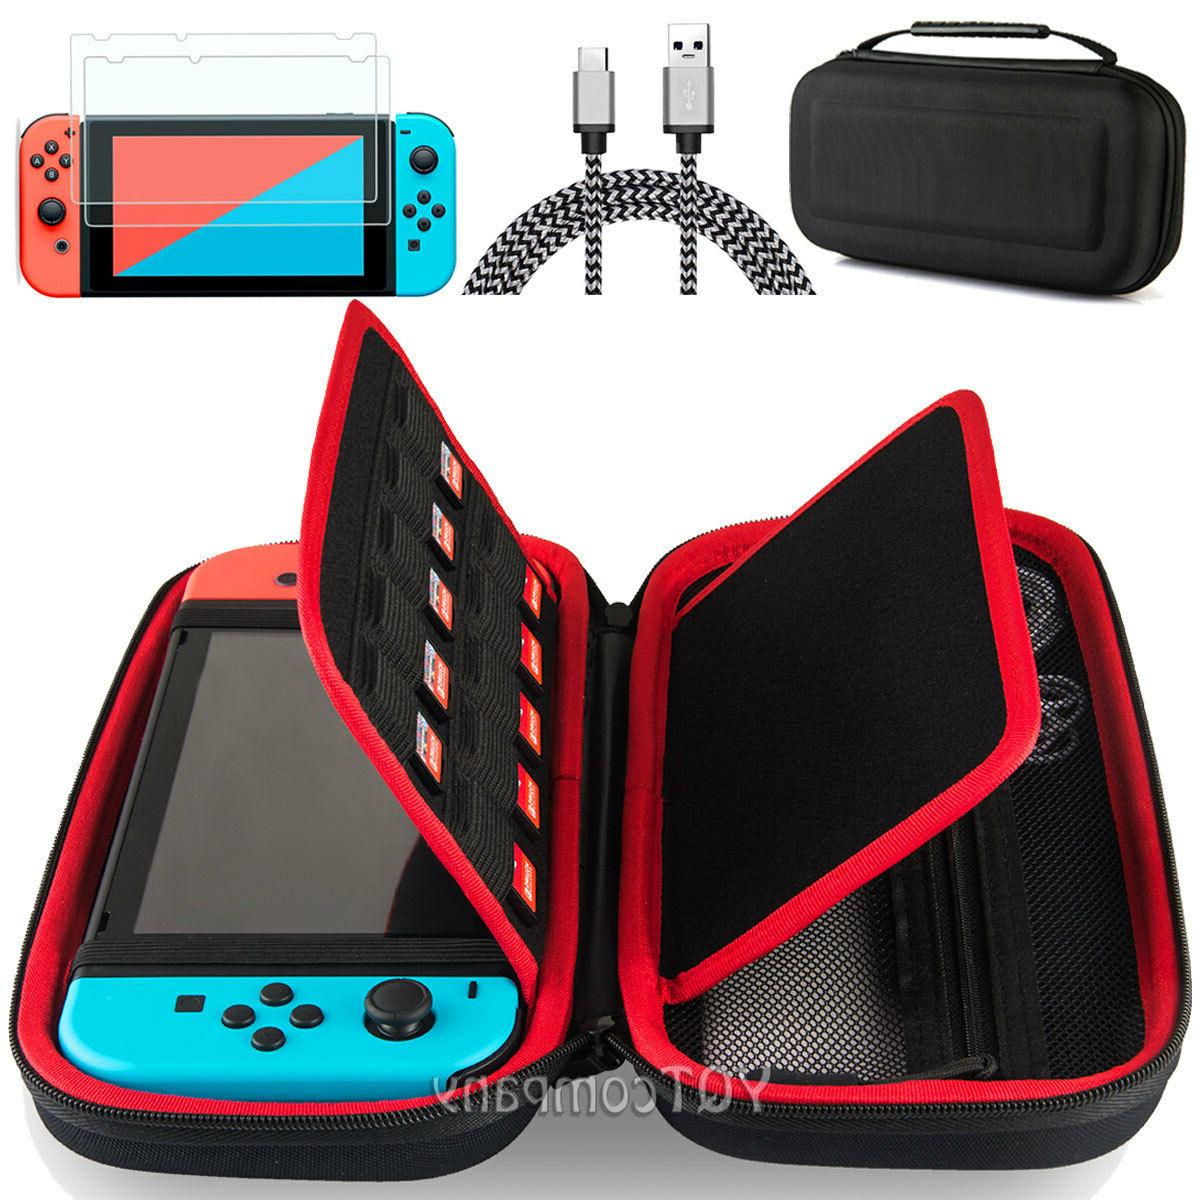 Accessories Case Bag+6ft/2M Charging Cable+2X Tempered Glass